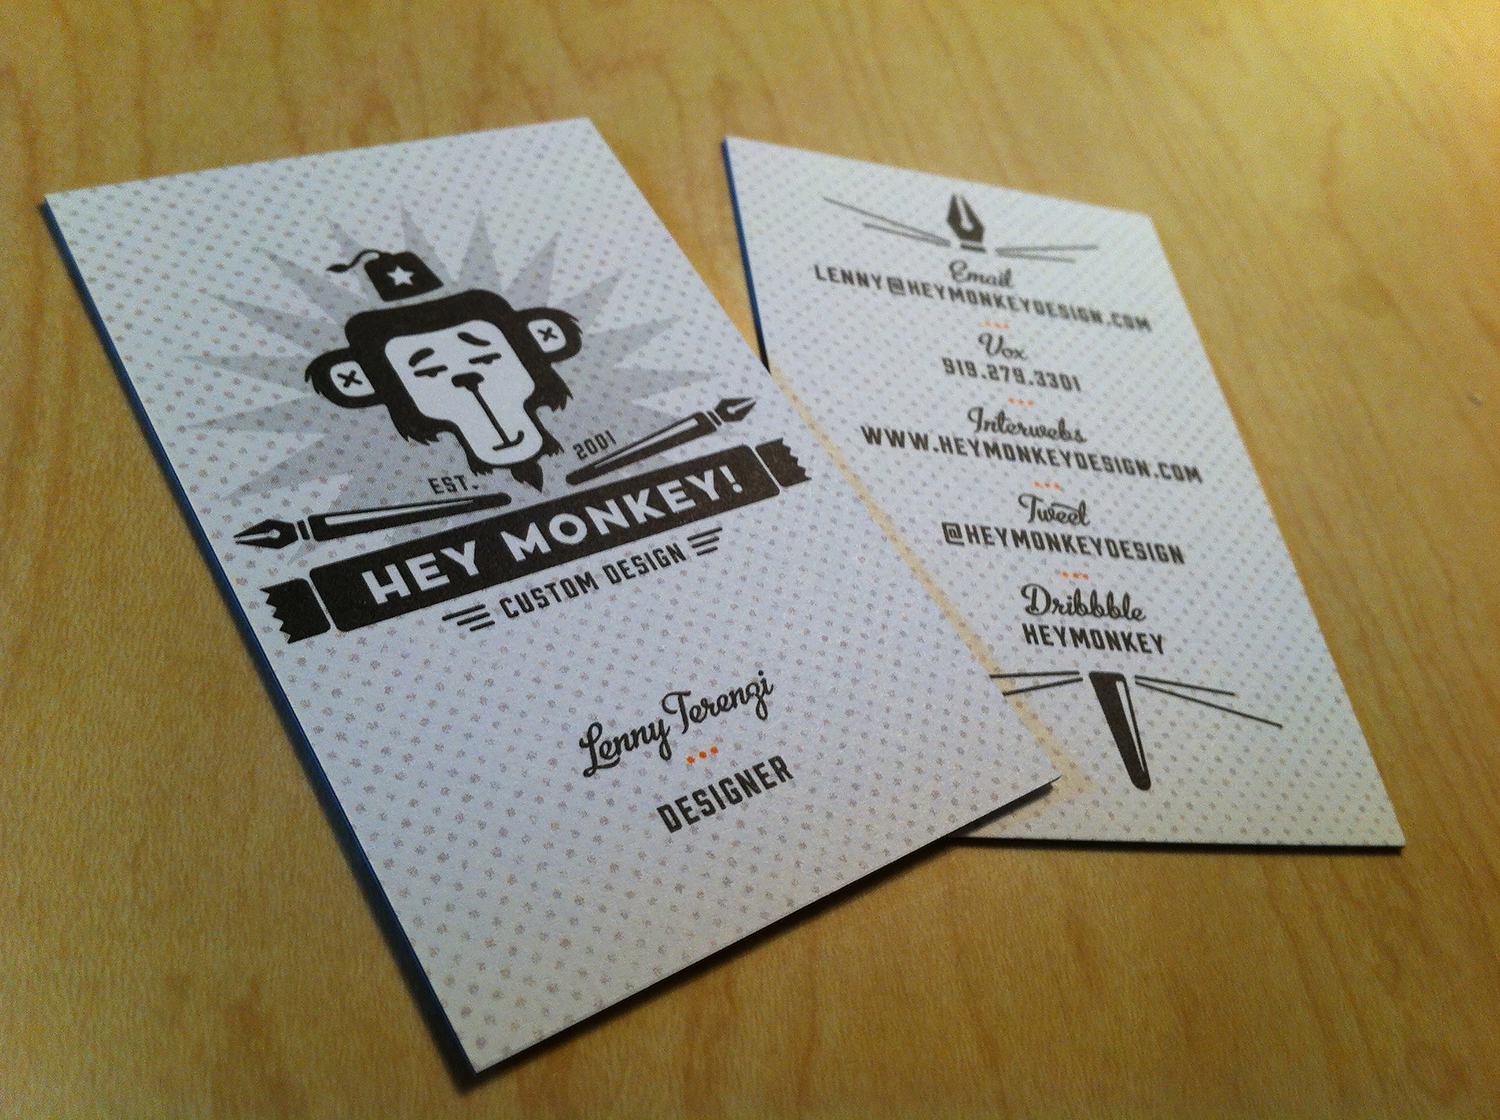 Hey Monkey Business Cards   Business Cards   Pinterest   Business ...